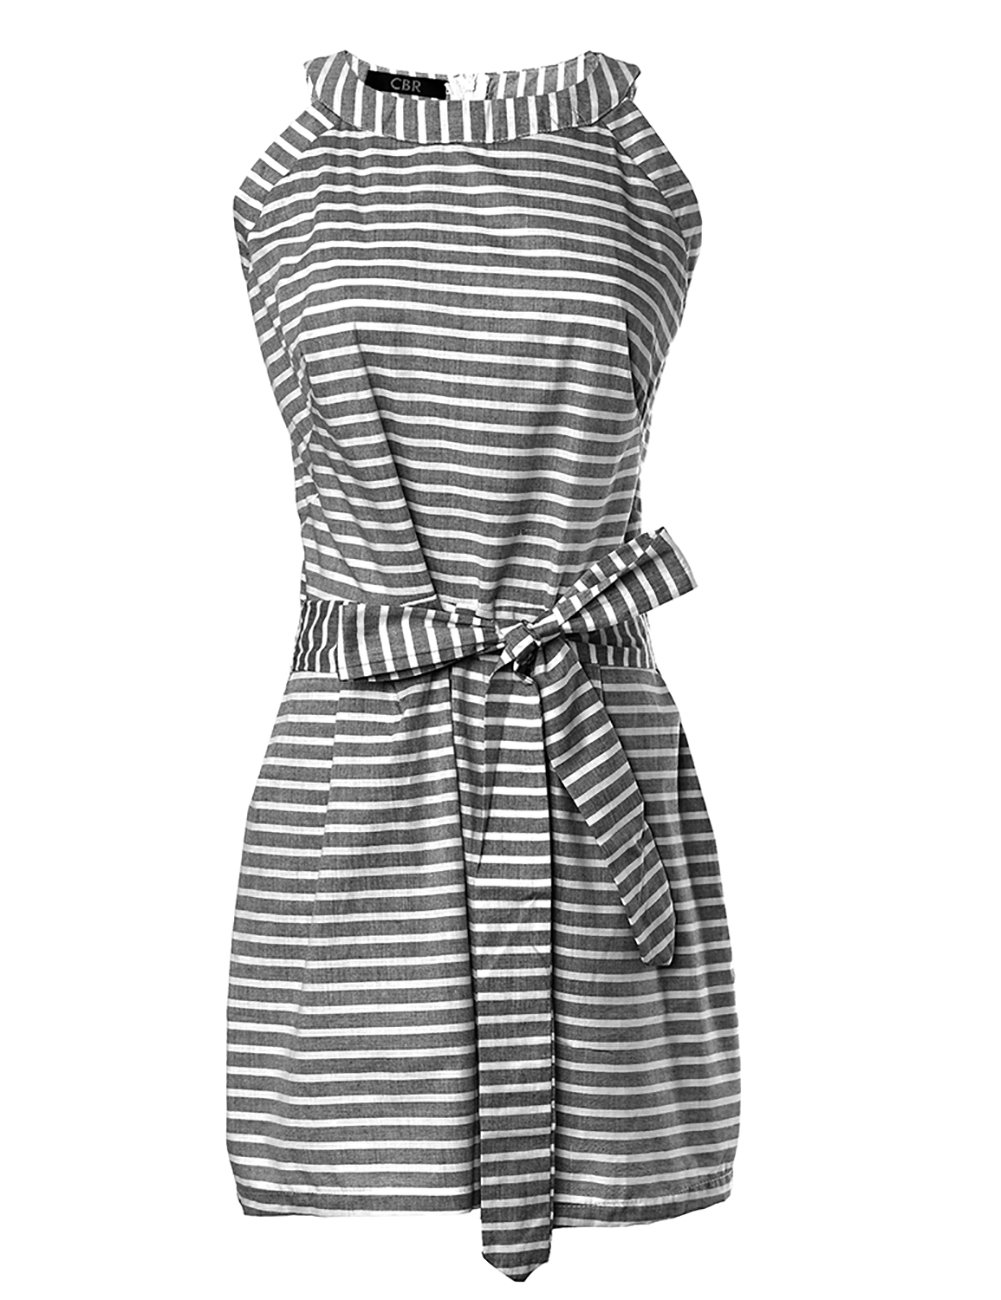 DUBACH Women Casual Striped Sleeveless Short Romper Jumpsuit L Gray by DUBACH (Image #3)